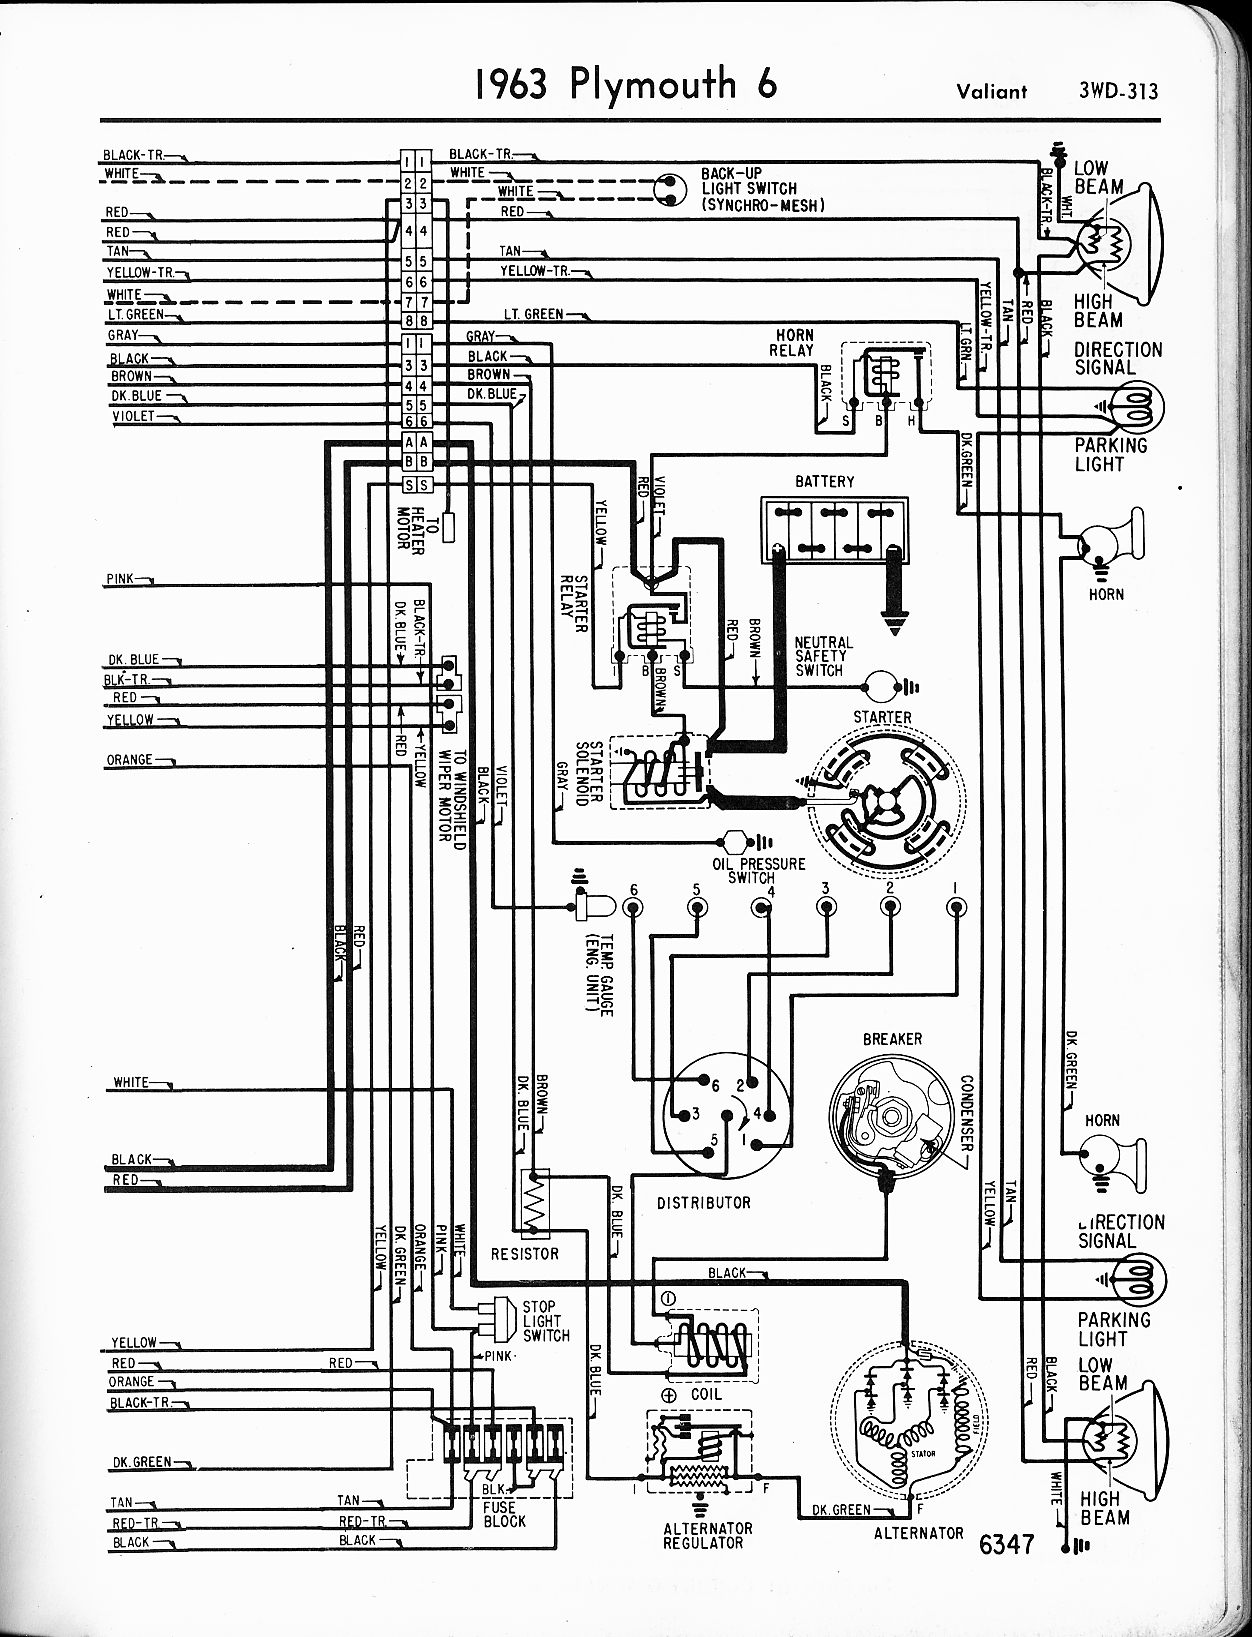 1968 Mustang Wiring Diagram Vacuum Schematics furthermore 1ck2f Low Pressure Port 06 5 9l Diesel further 3mtqj 97 Chevy Carb 350 5 7 Efi System Replaced further 2oifm 2002 Ford Expedition 5 4v8 Not Getting Fuel Turn moreover 87 Dodge B250 Wiring Diagrams. on chrysler charging system wiring